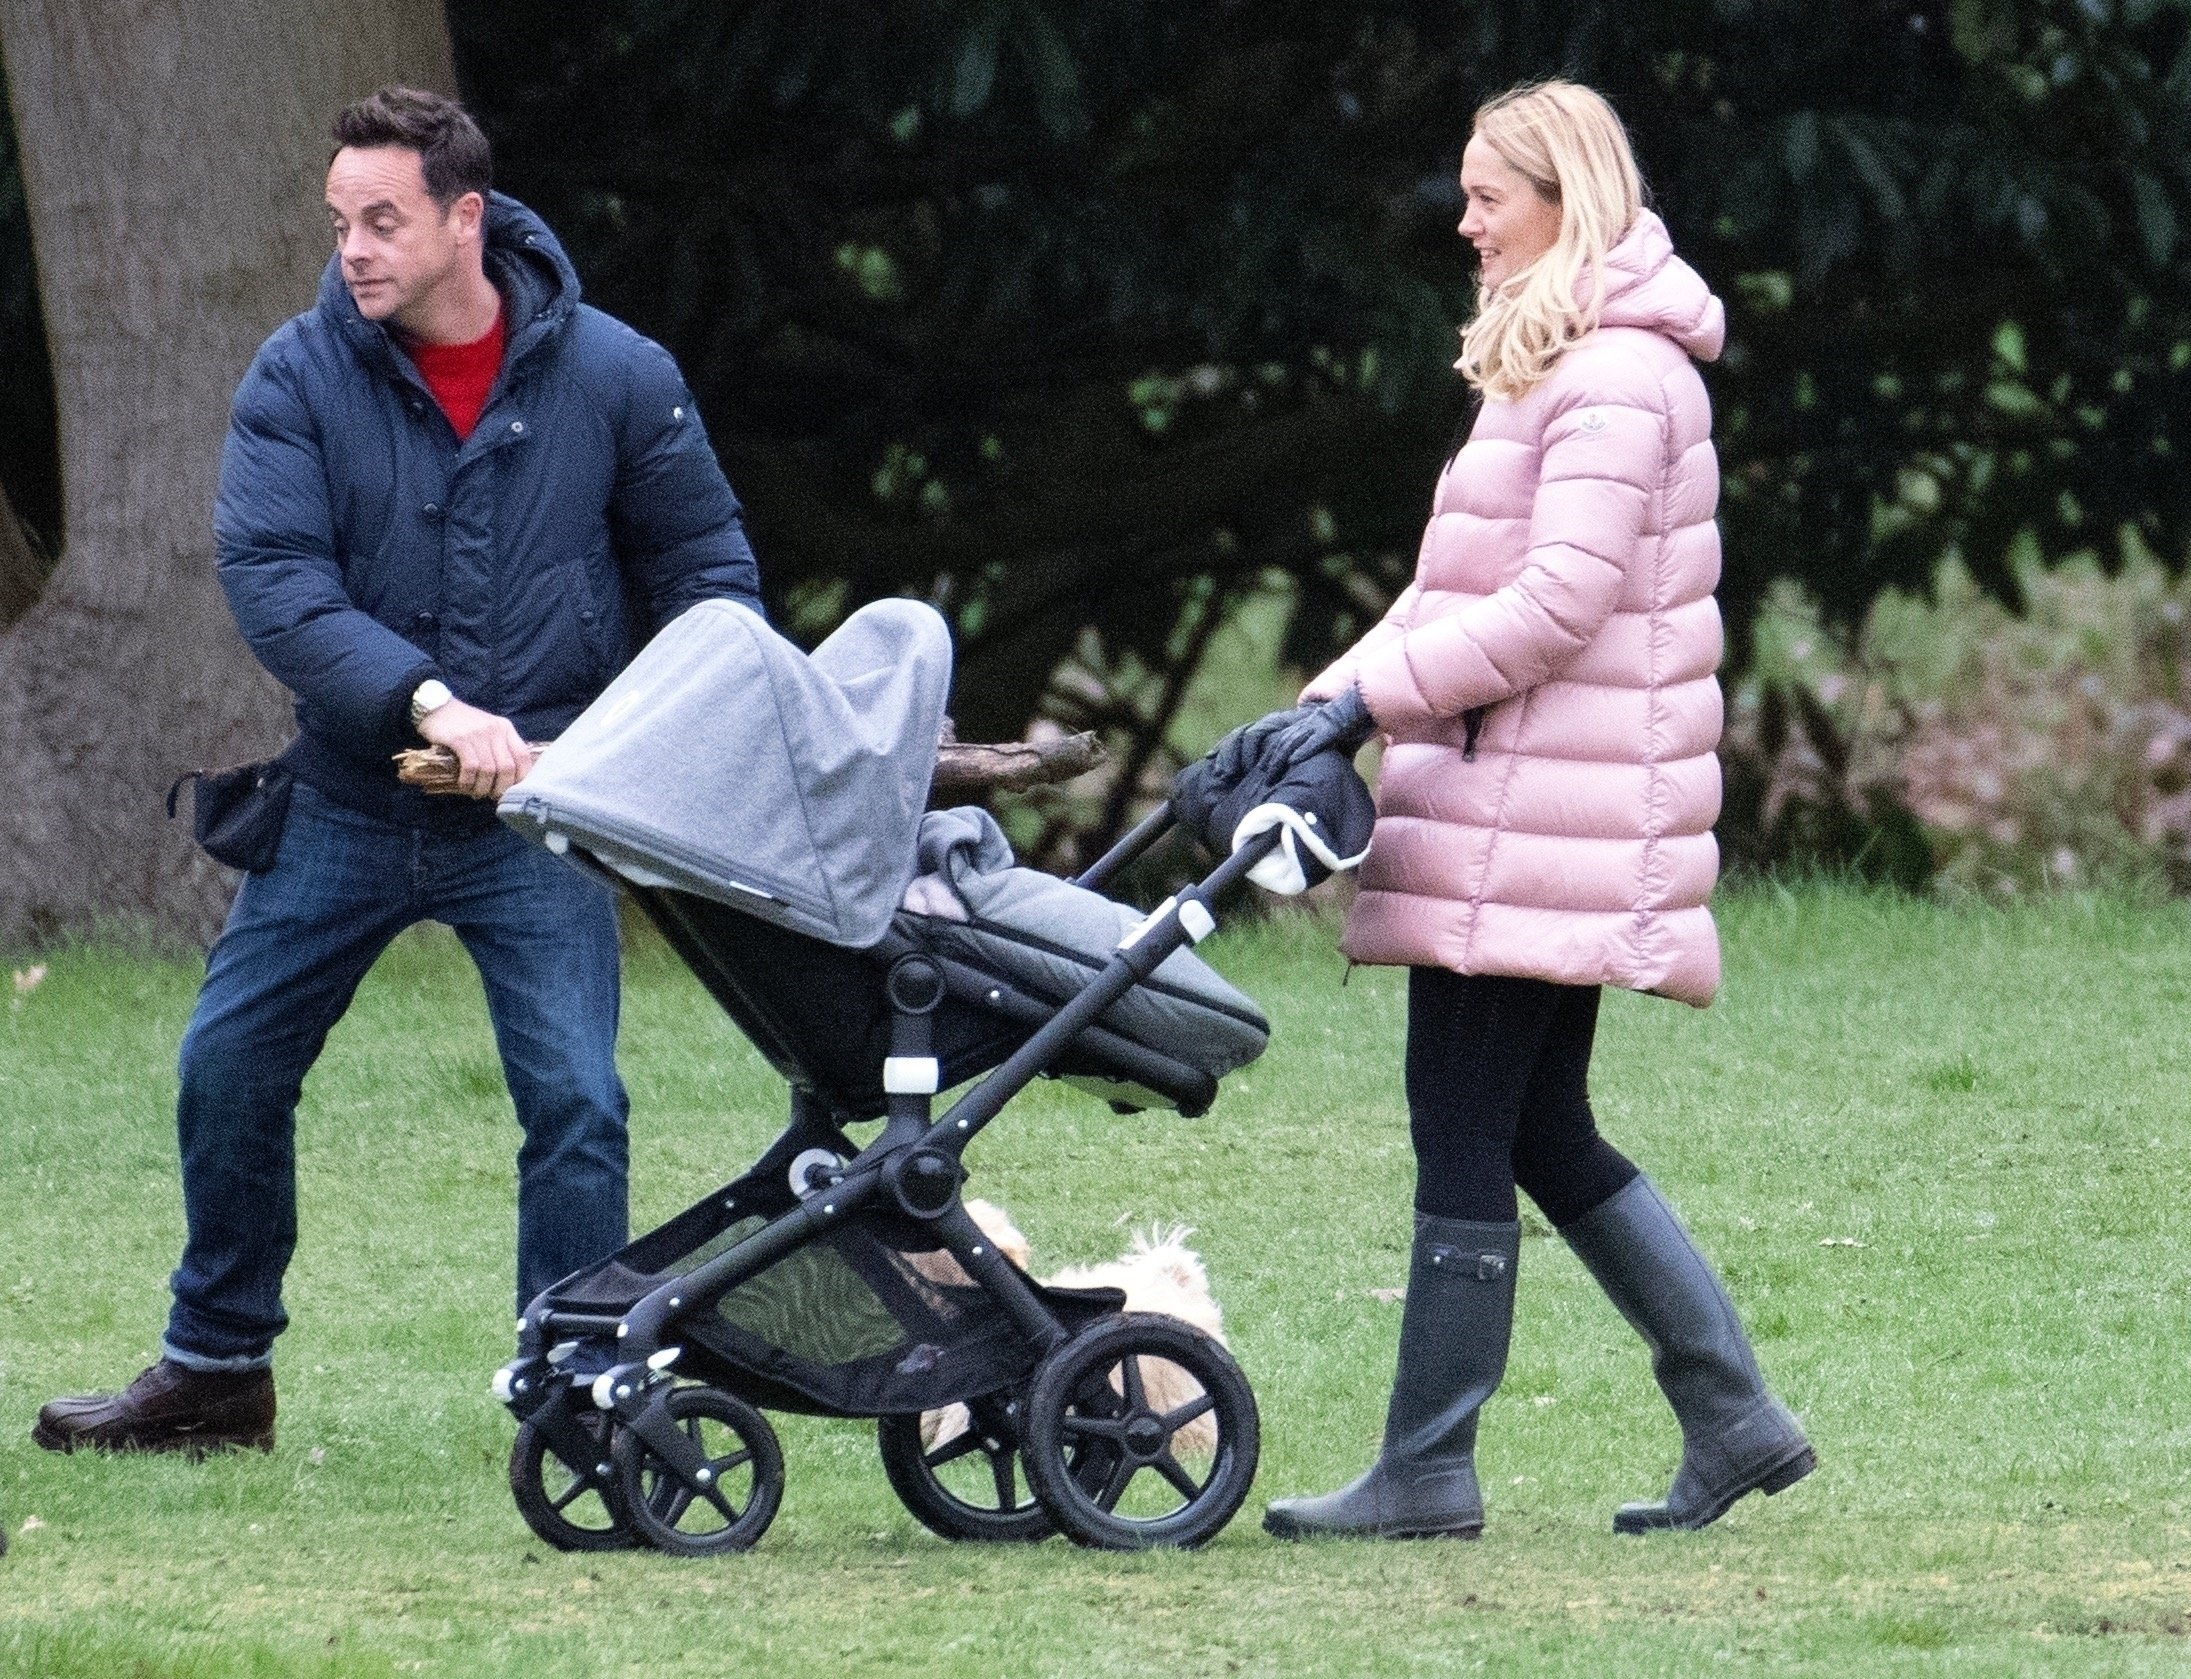 Ant McPartlin and Anne-Marie Corbett gets hands on with pram as they dote on Dec Donnelly's baby girl